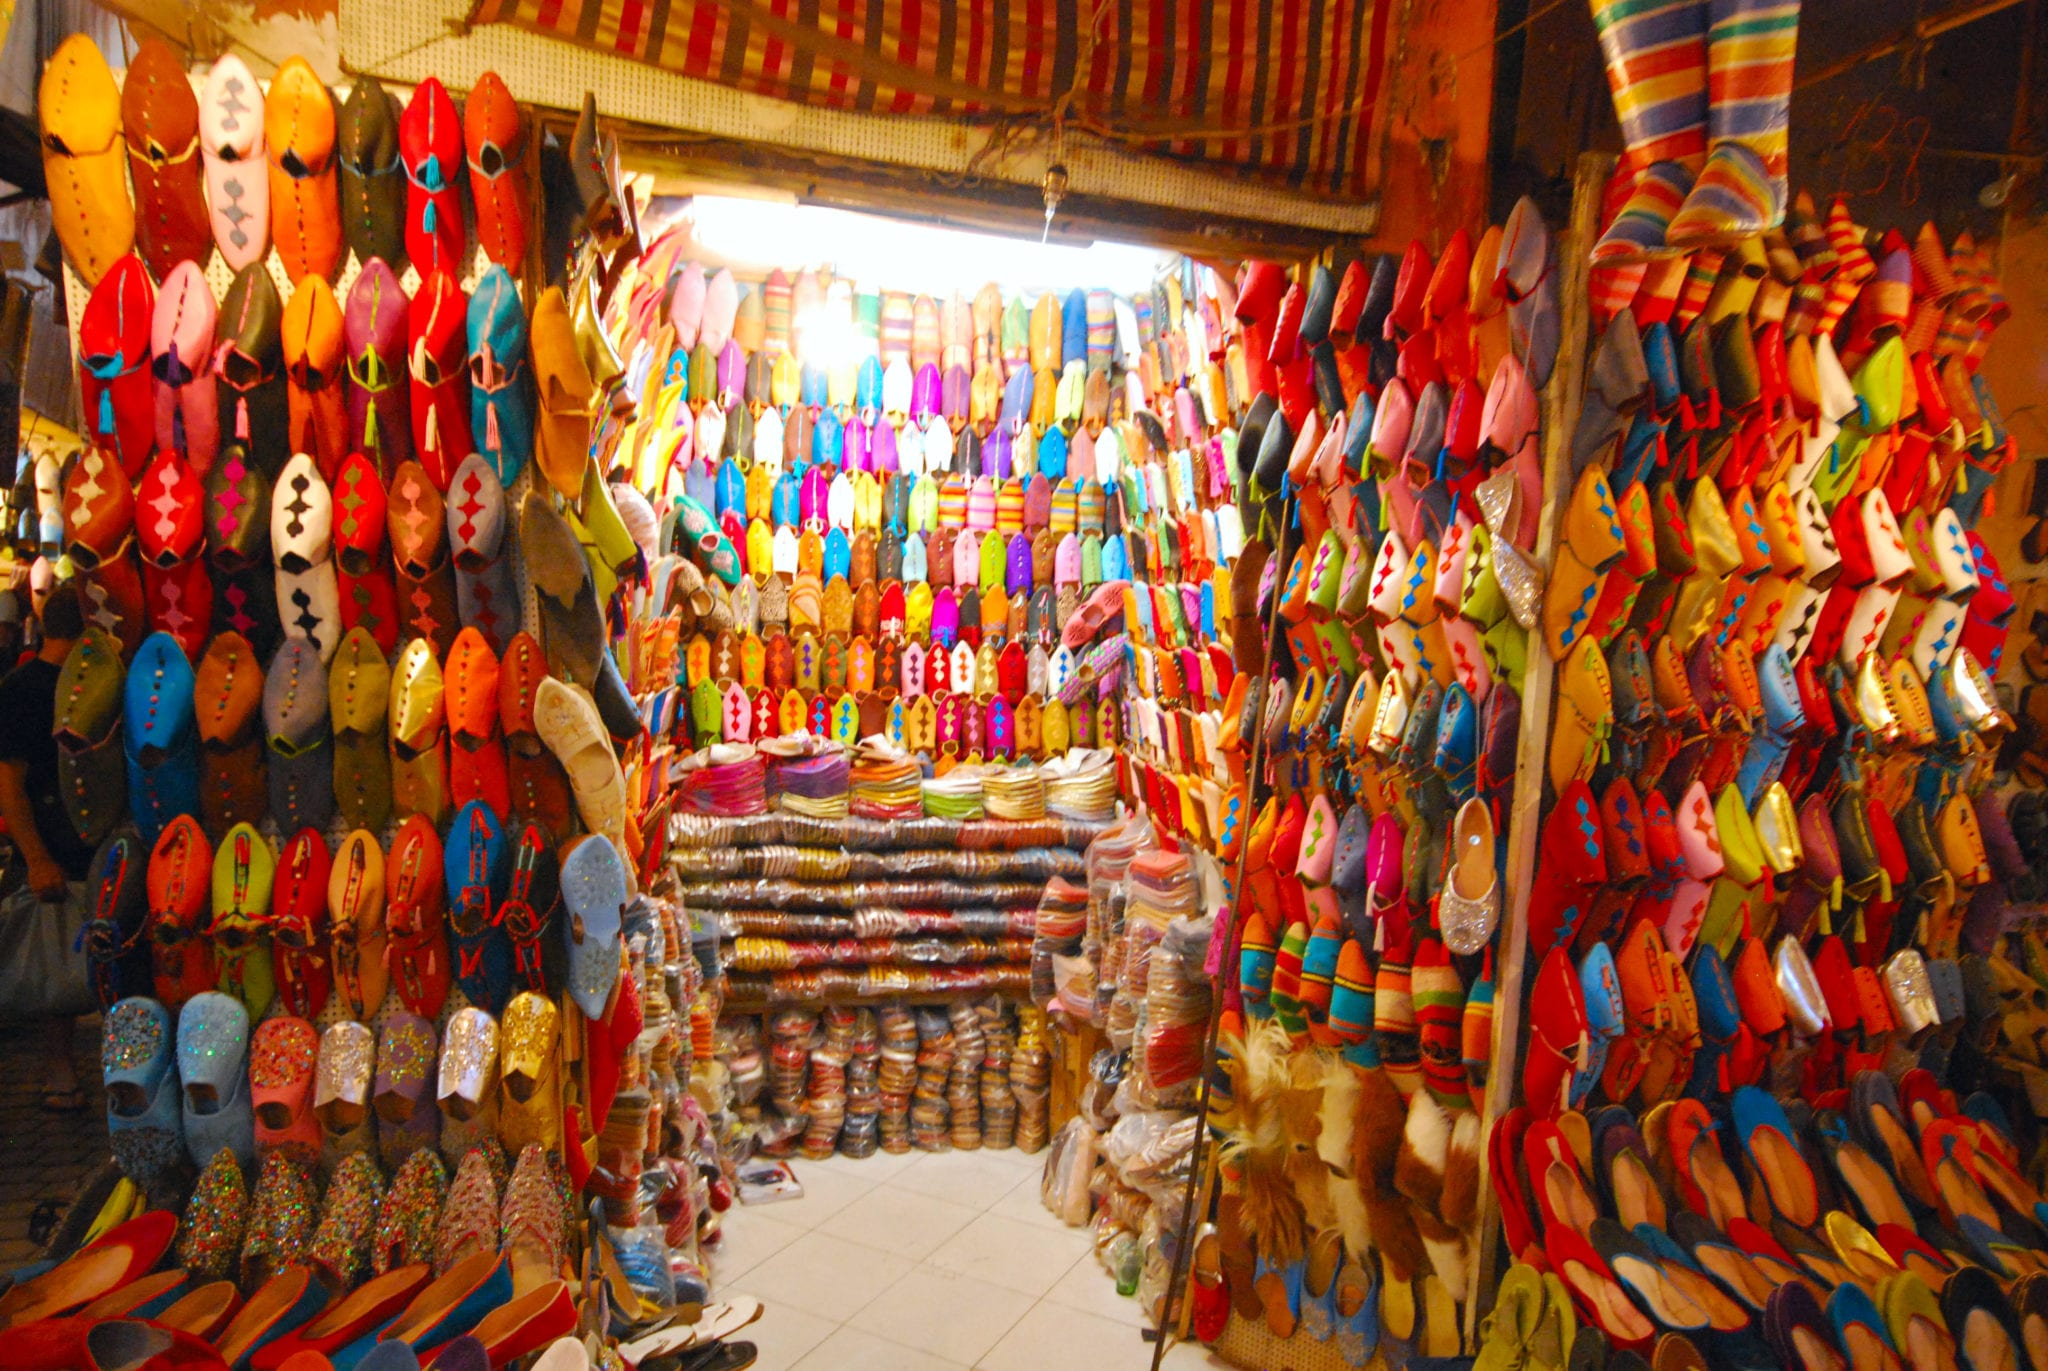 Explore the Souks of Marrakech